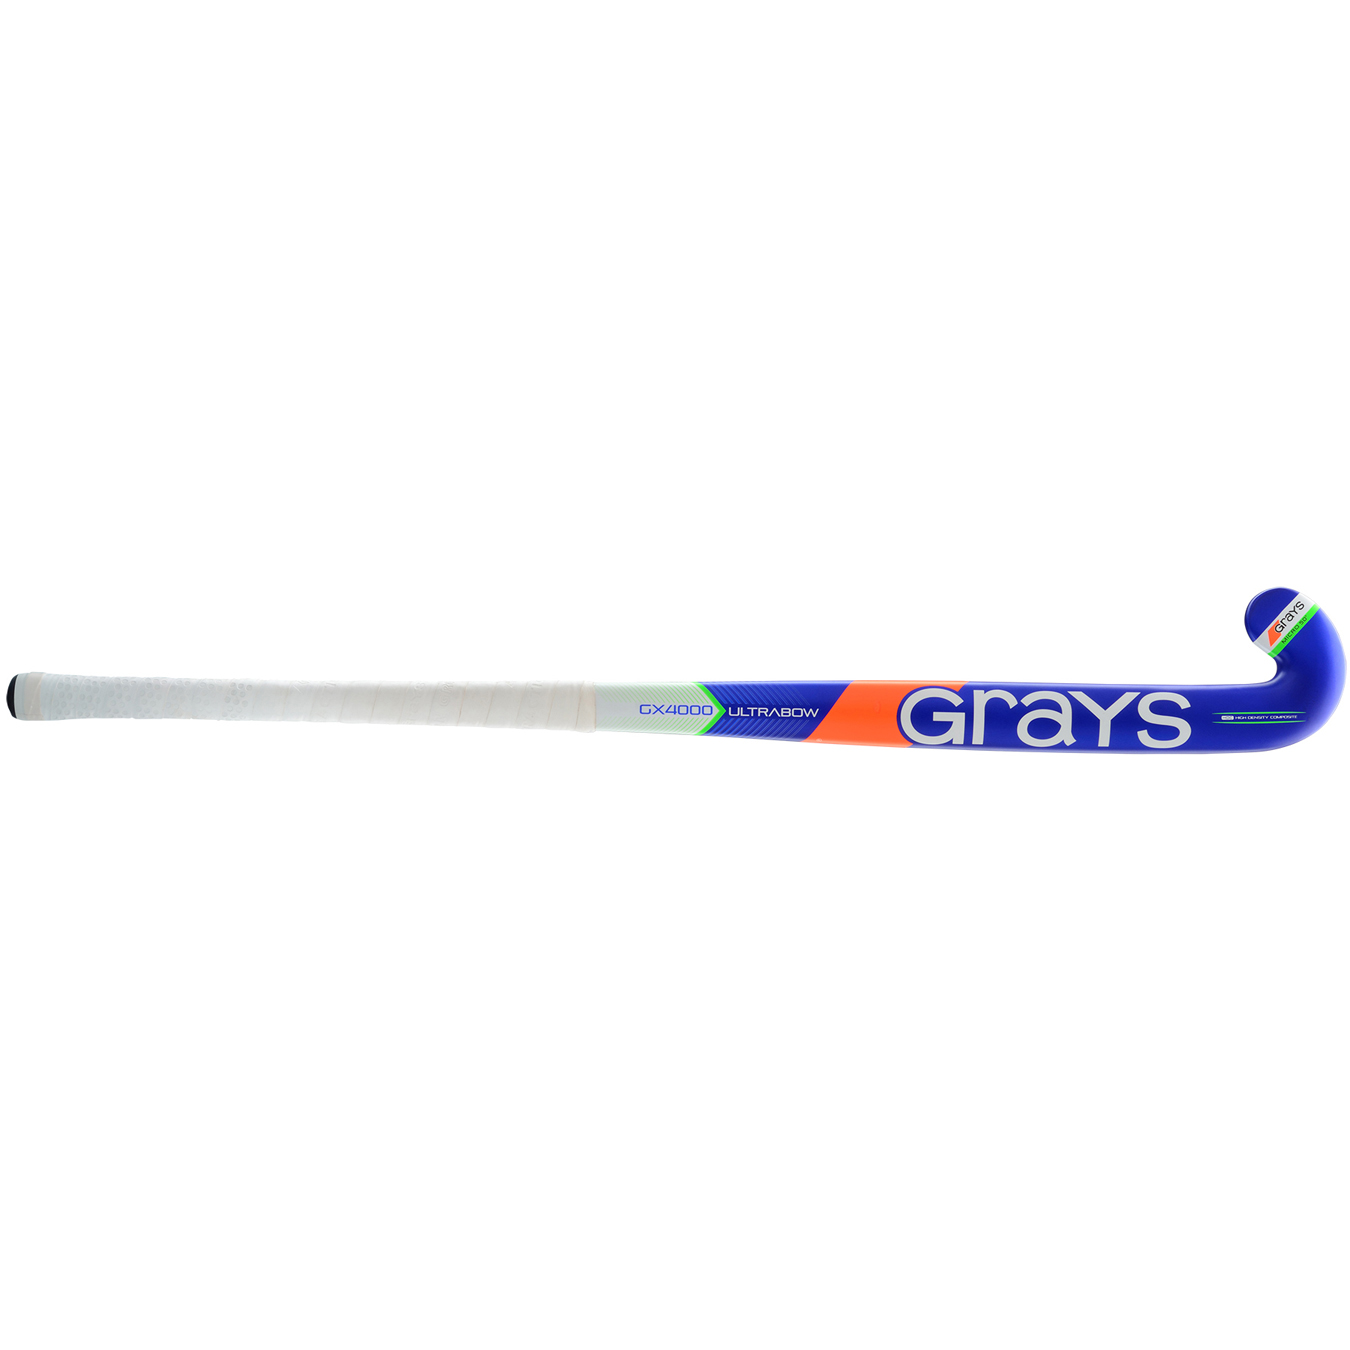 Junior kunstof hockeystick Grays GX4000 ultrabow